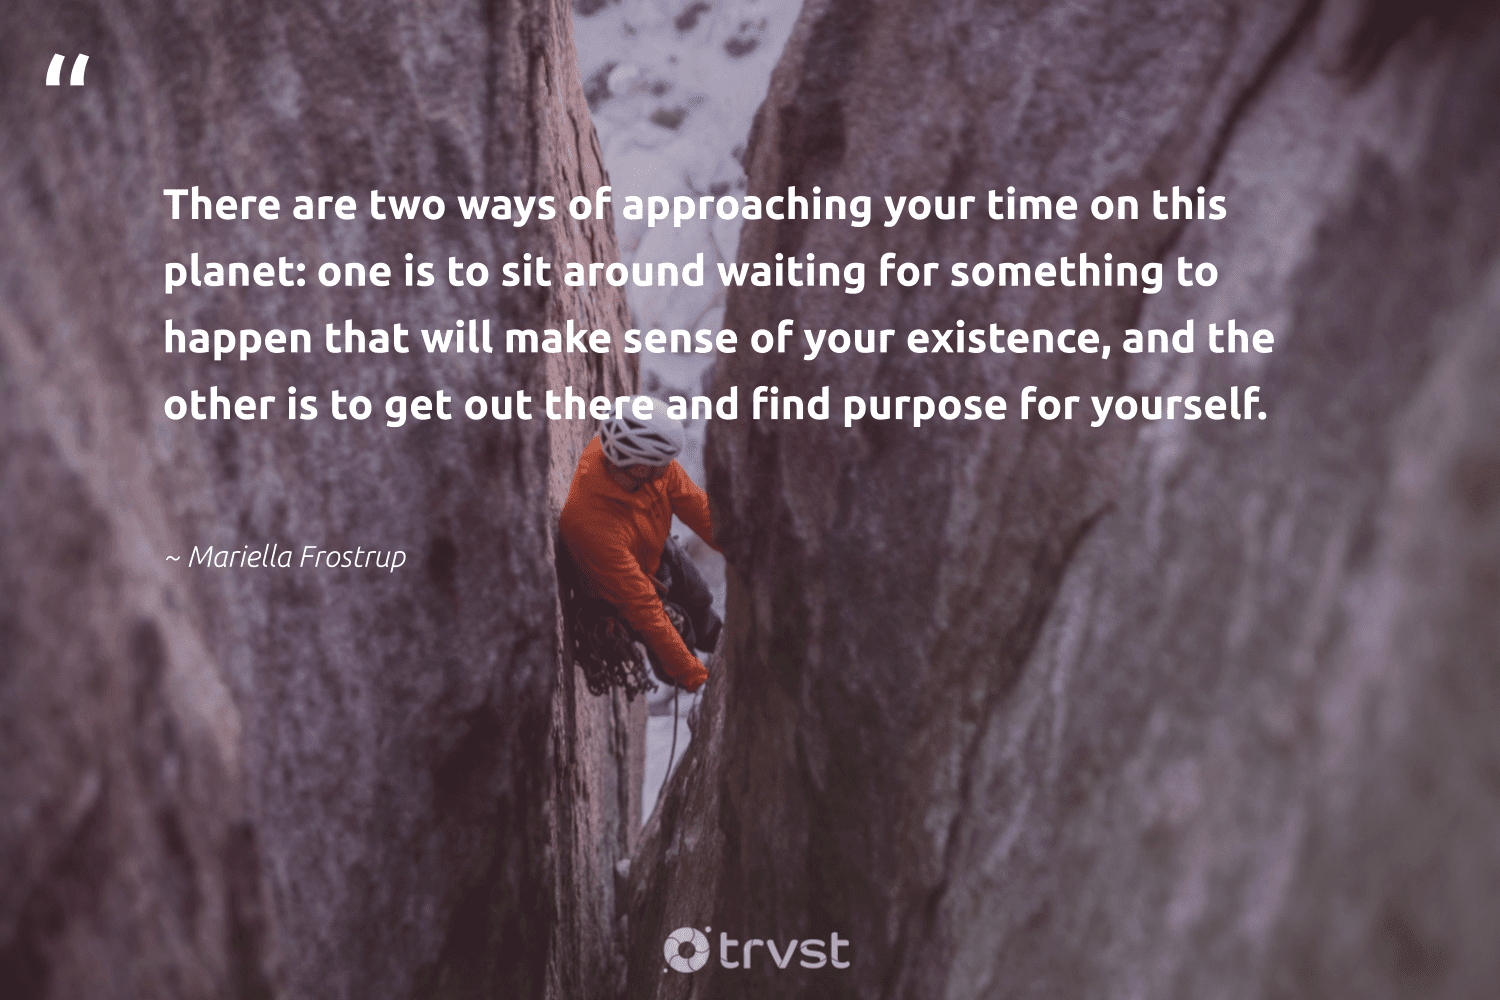 """""""There are two ways of approaching your time on this planet: one is to sit around waiting for something to happen that will make sense of your existence, and the other is to get out there and find purpose for yourself.""""  - Mariella Frostrup #trvst #quotes #purpose #findpurpose #purposedriven #findingpupose #nevergiveup #togetherwecan #collectiveaction #health #begreat #beinspired"""